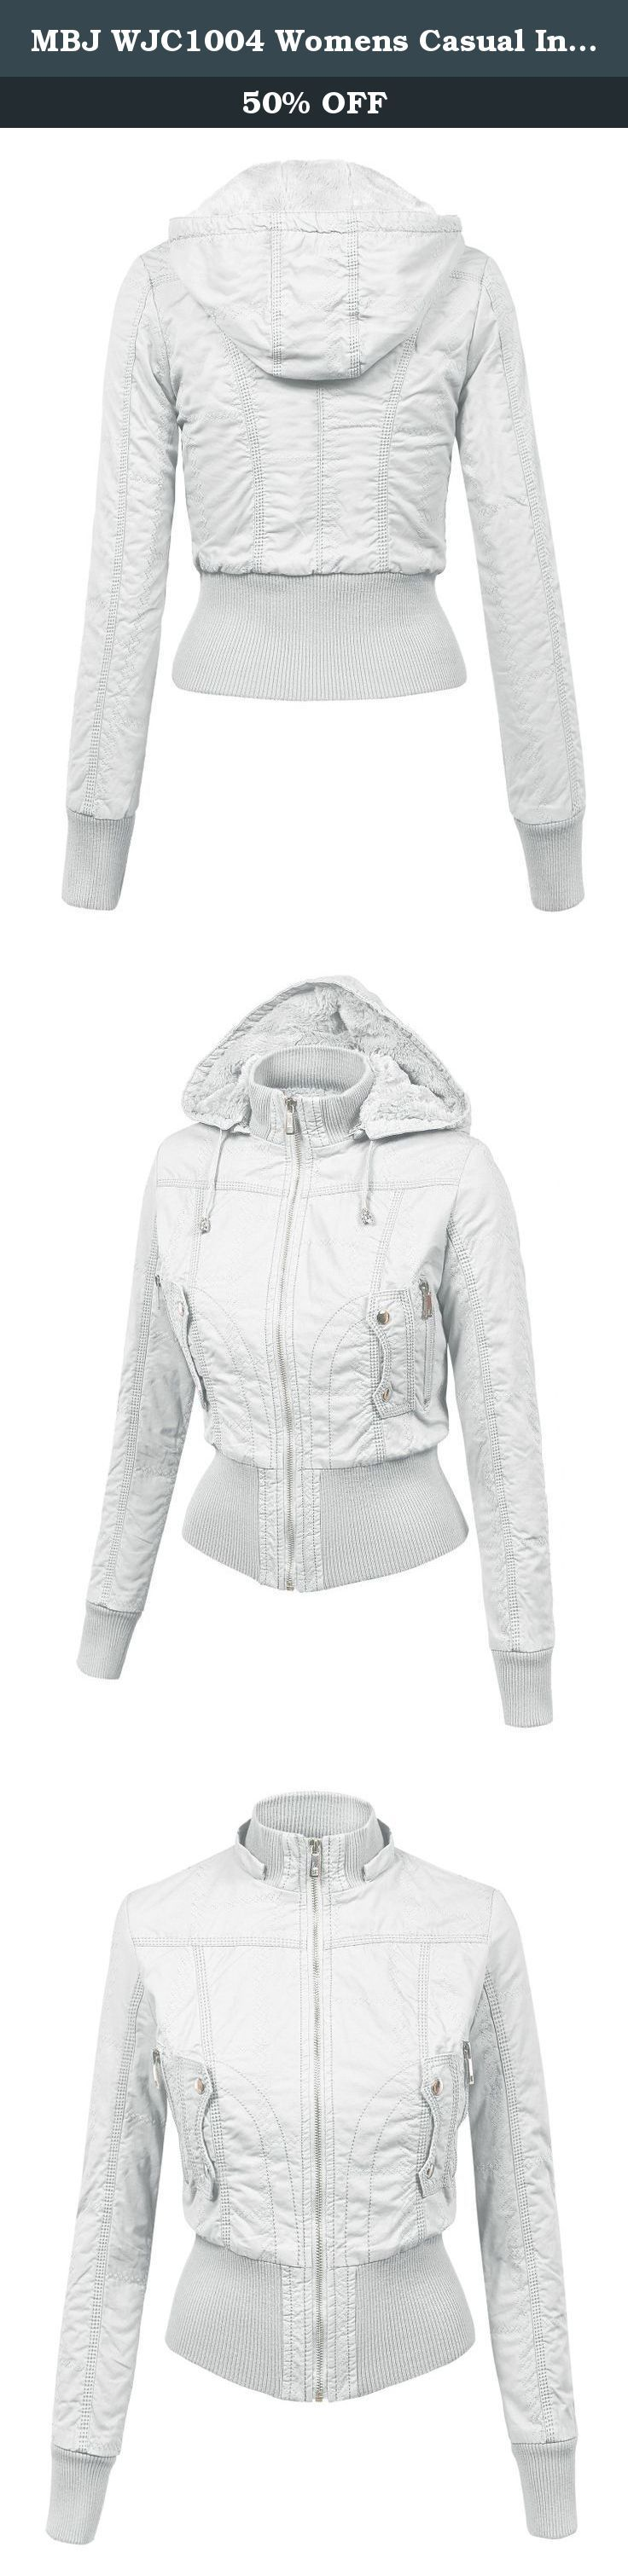 MBJ WJC1004 Womens Casual Inner Fleece Bomber Jacket with Removable Hoodie XS WHITE. The everyday bomber jacket, featuring a exposed zip up closure.Tunnel neck with separate rib panel and lined hood. 2 front pocket and 2 faux pockets with flap button closure. Rib trim on waist and sleeves. Inner fleece. Fully Lined. Light-Medium Weight. It can be worn causally throughout the day or dressed up with heels for a girls night out.